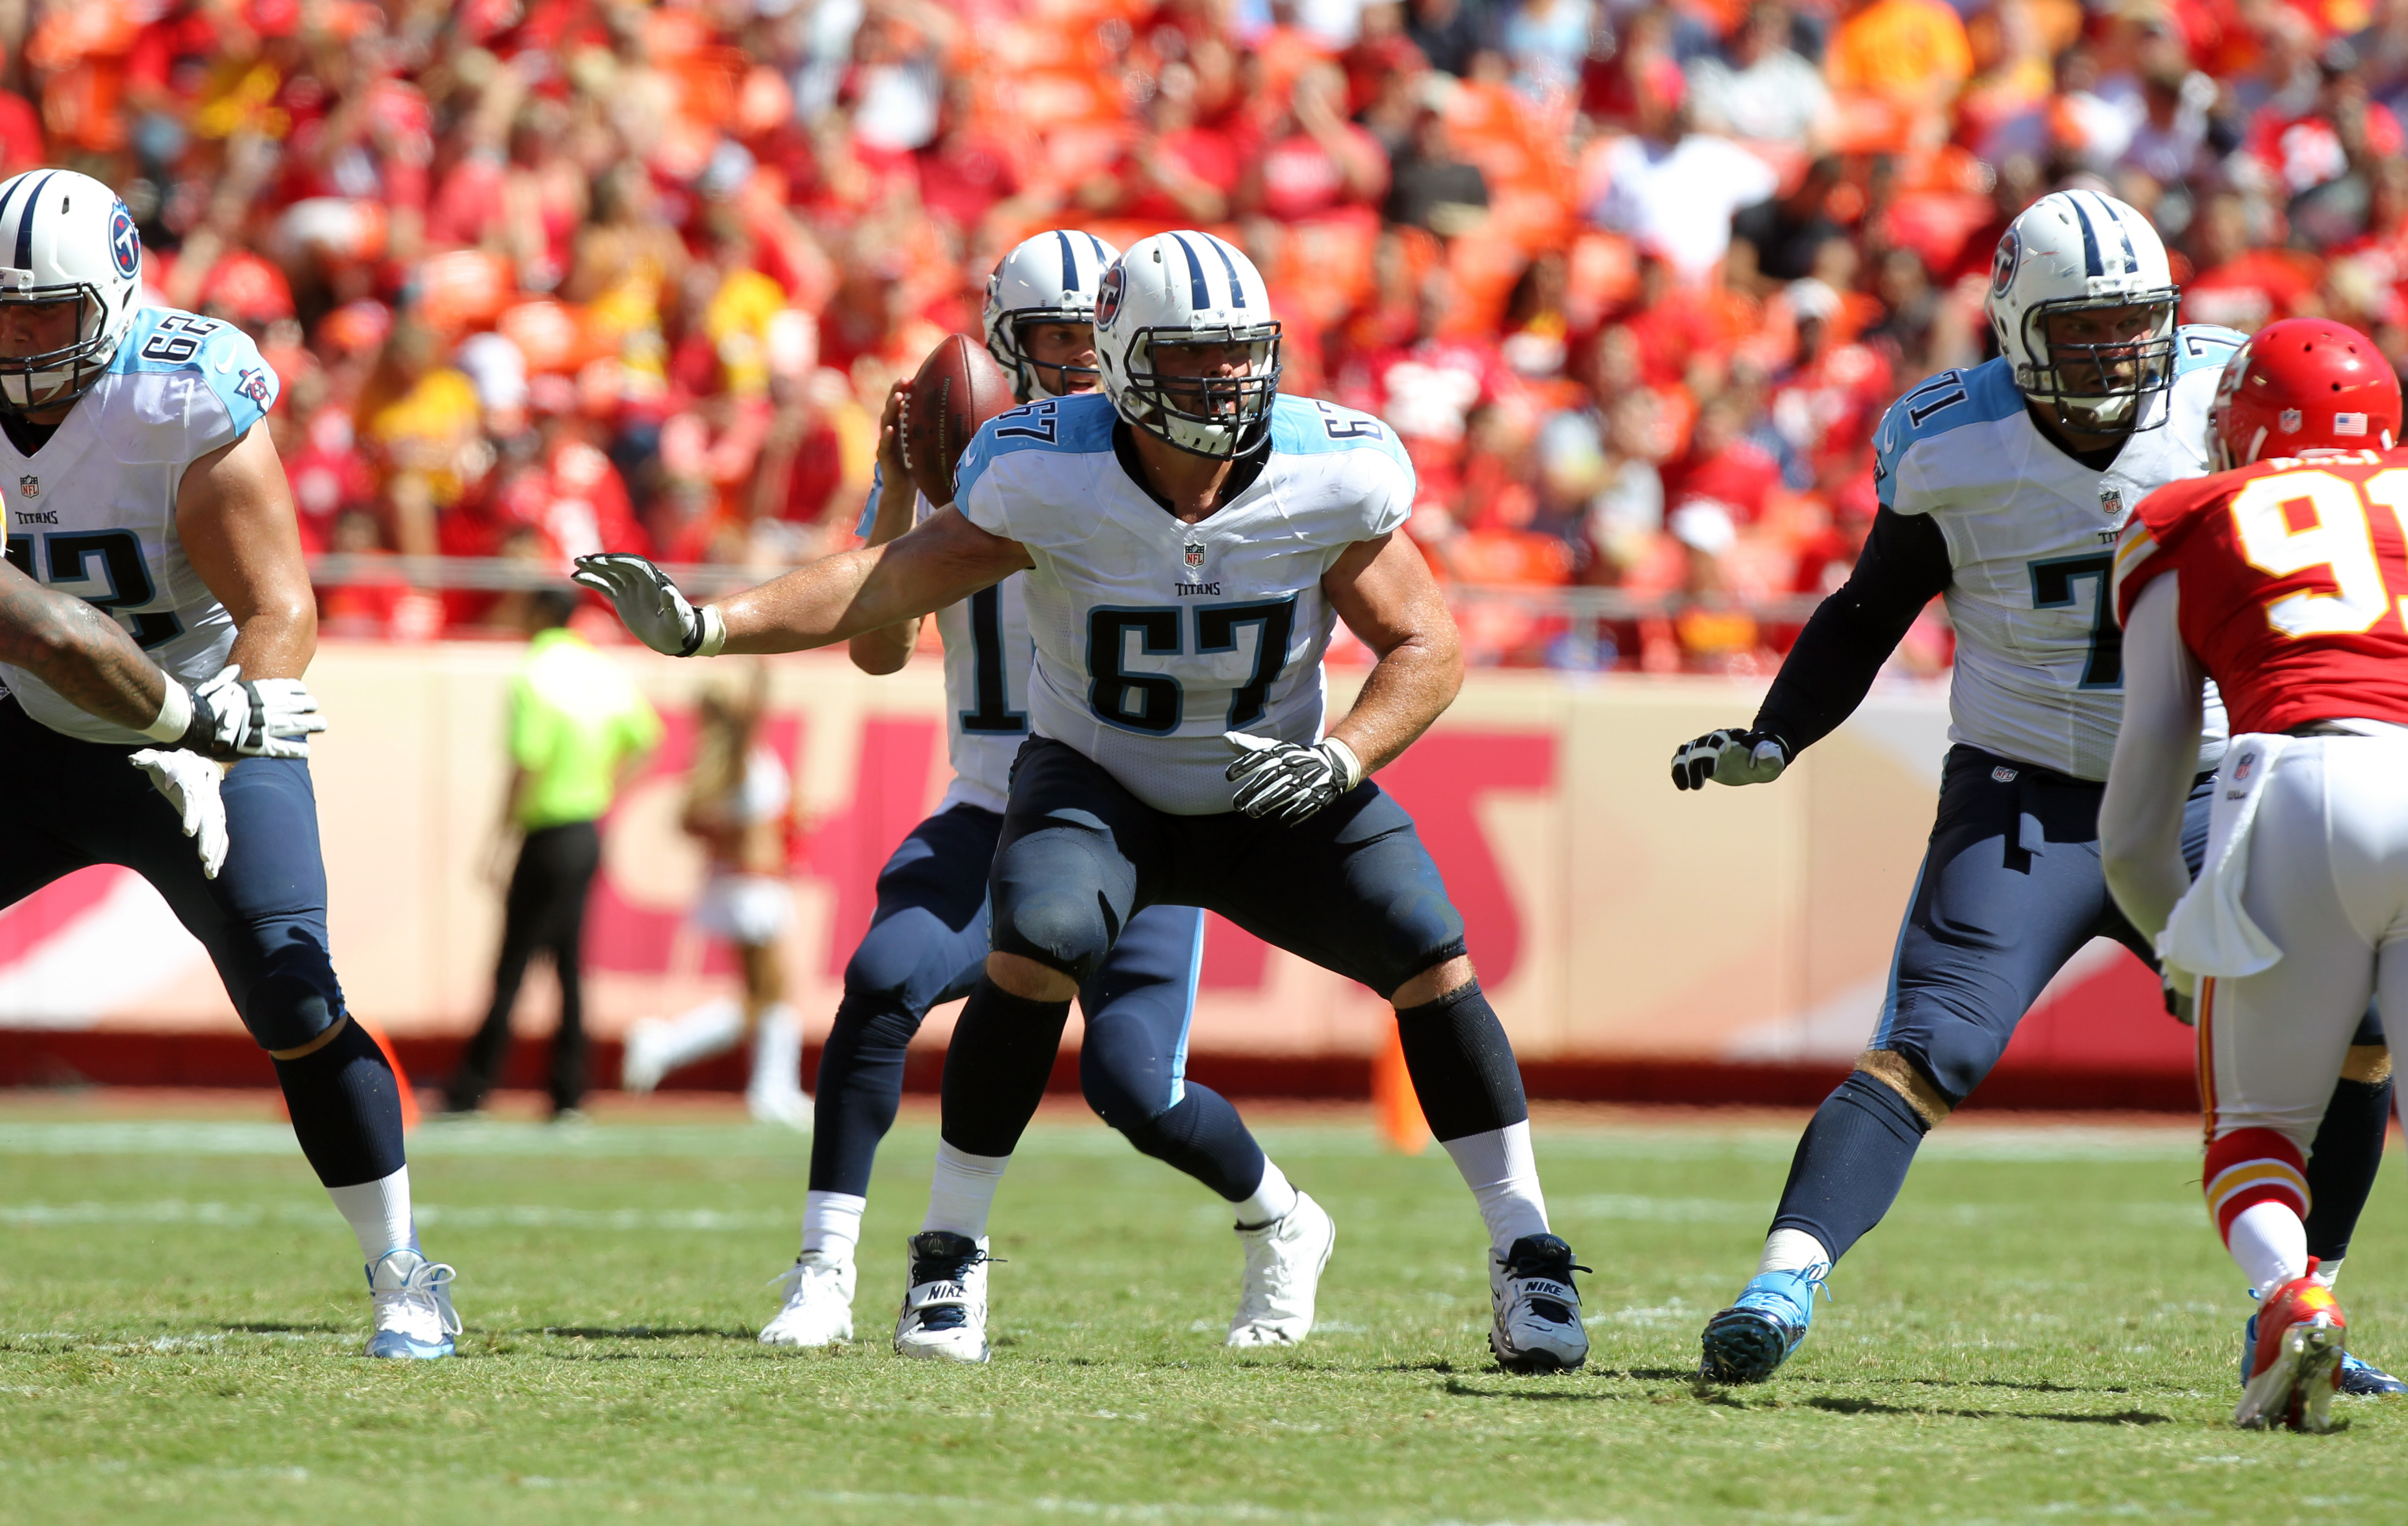 FILE - In this Sept. 7, 2014, file photo, Tennessee Titans guard Andy Levitre (67) blocks during an NFL football game against the Kansas City Chiefs in Kansas City, Mo. The Atlanta Falcons have traded with the Titans for veteran guard Andy Levitre in exch